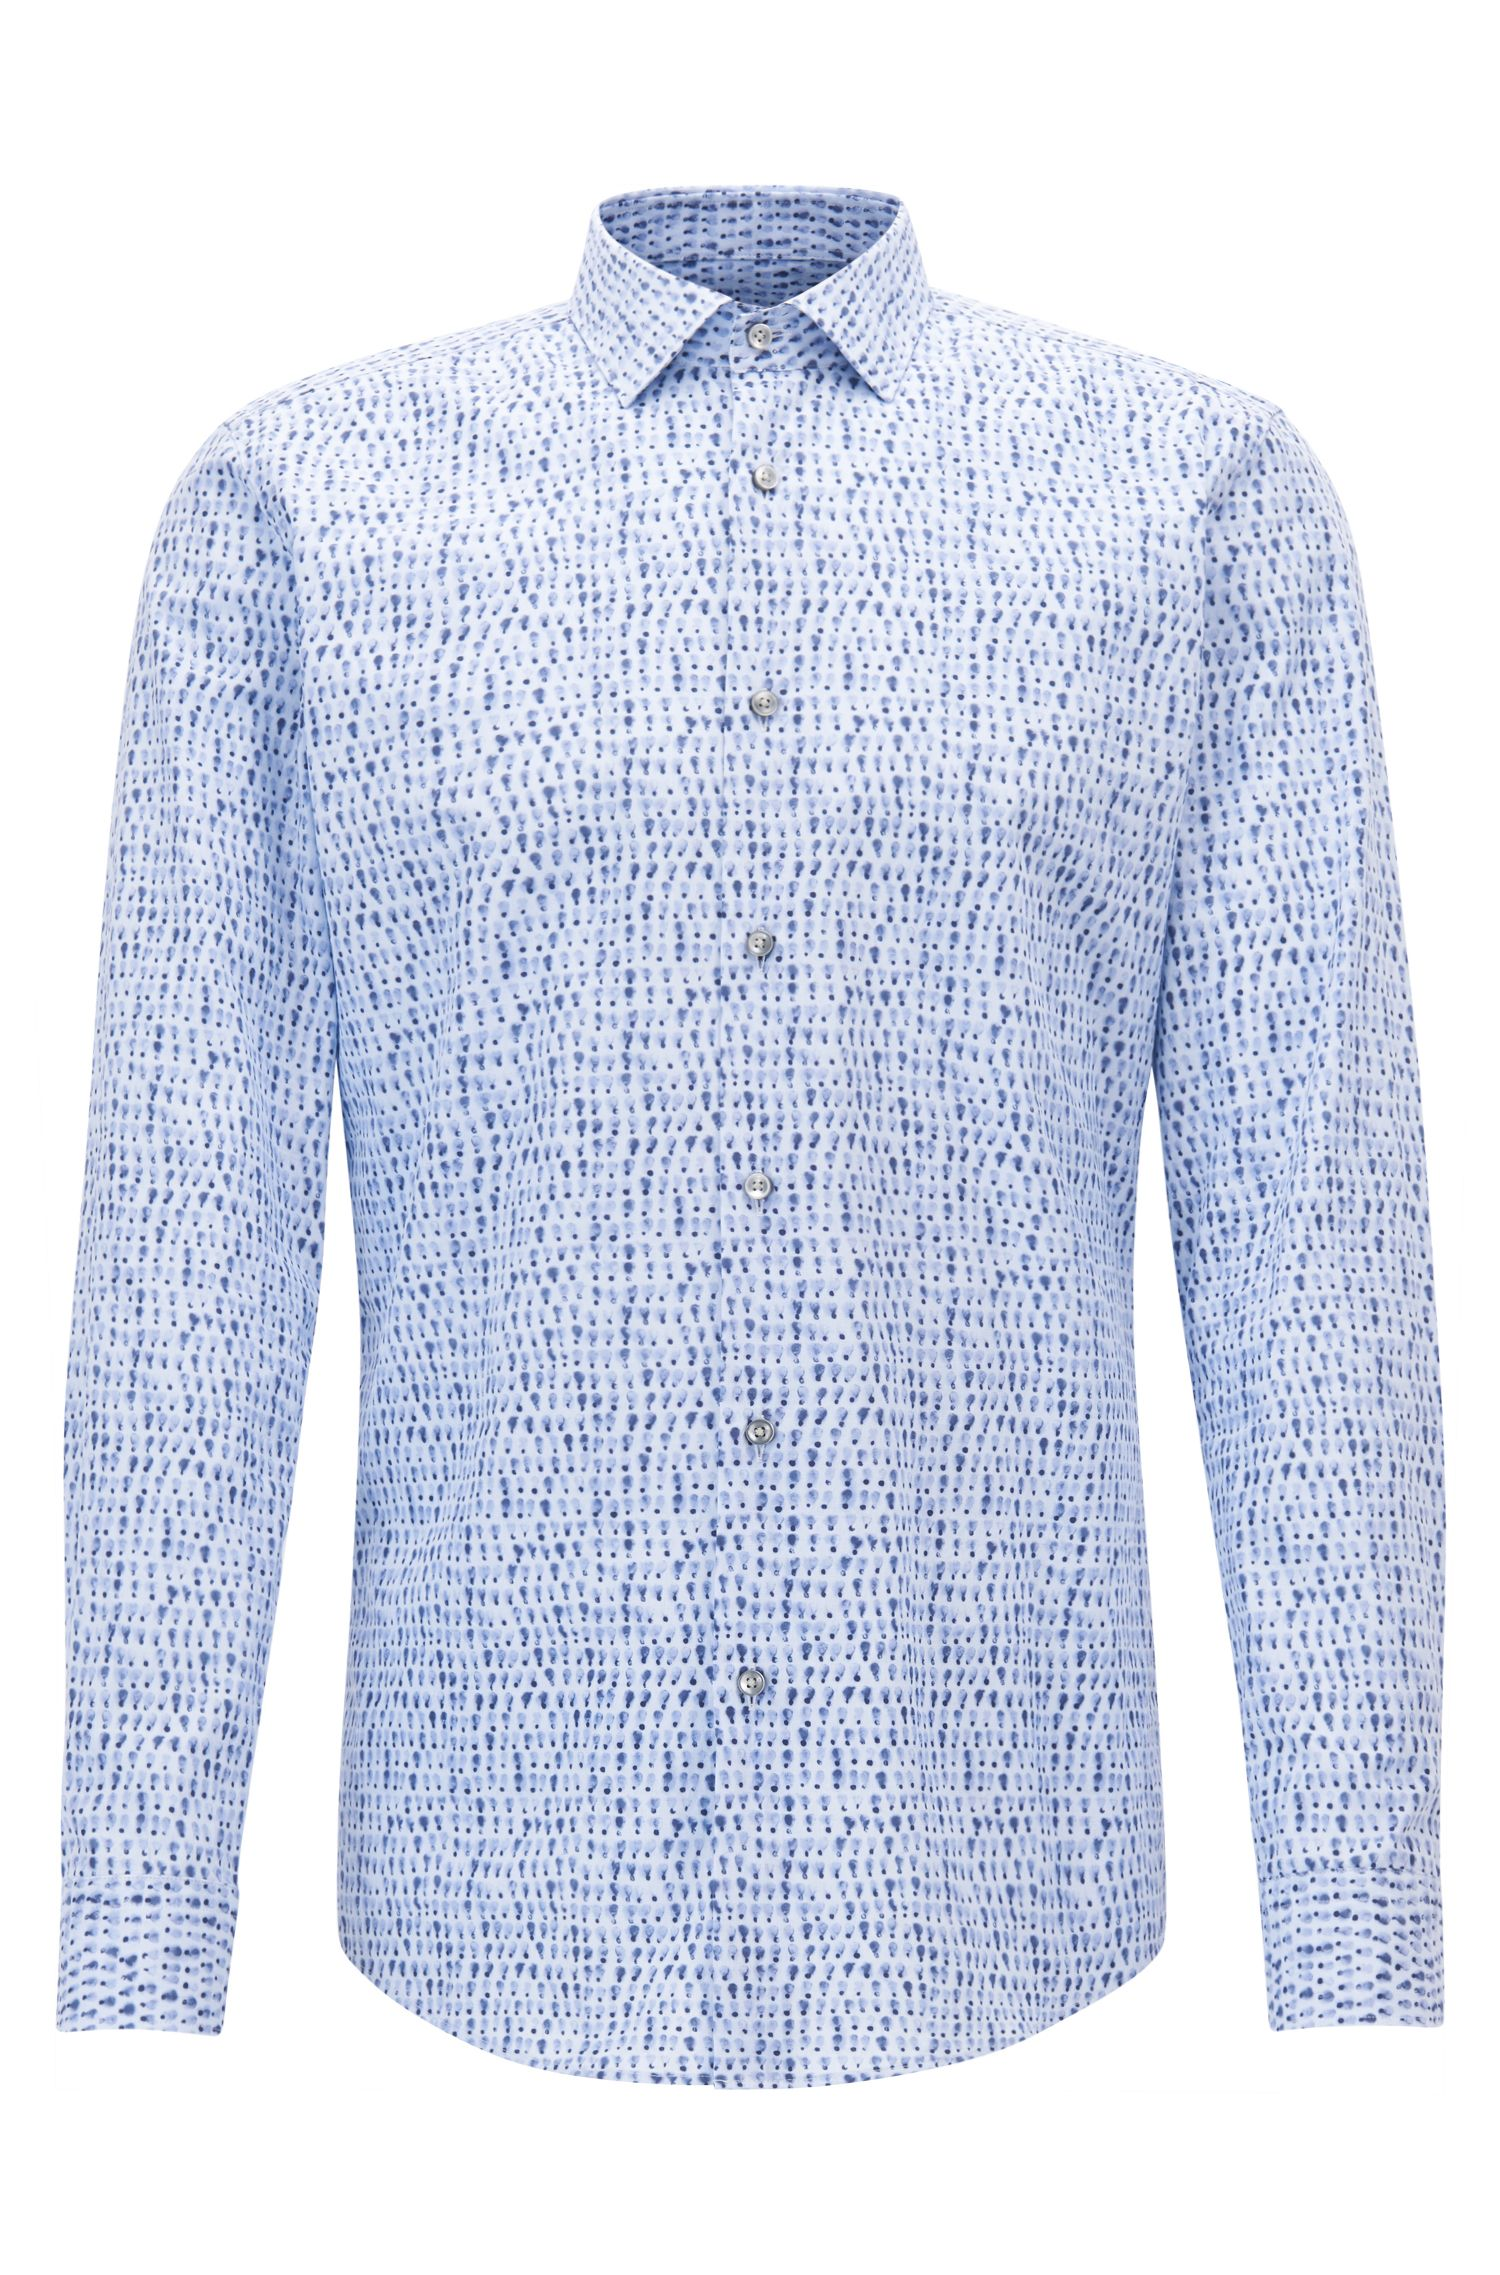 Patterned Cotton Dress Shirt, Slim Fit | Ismo